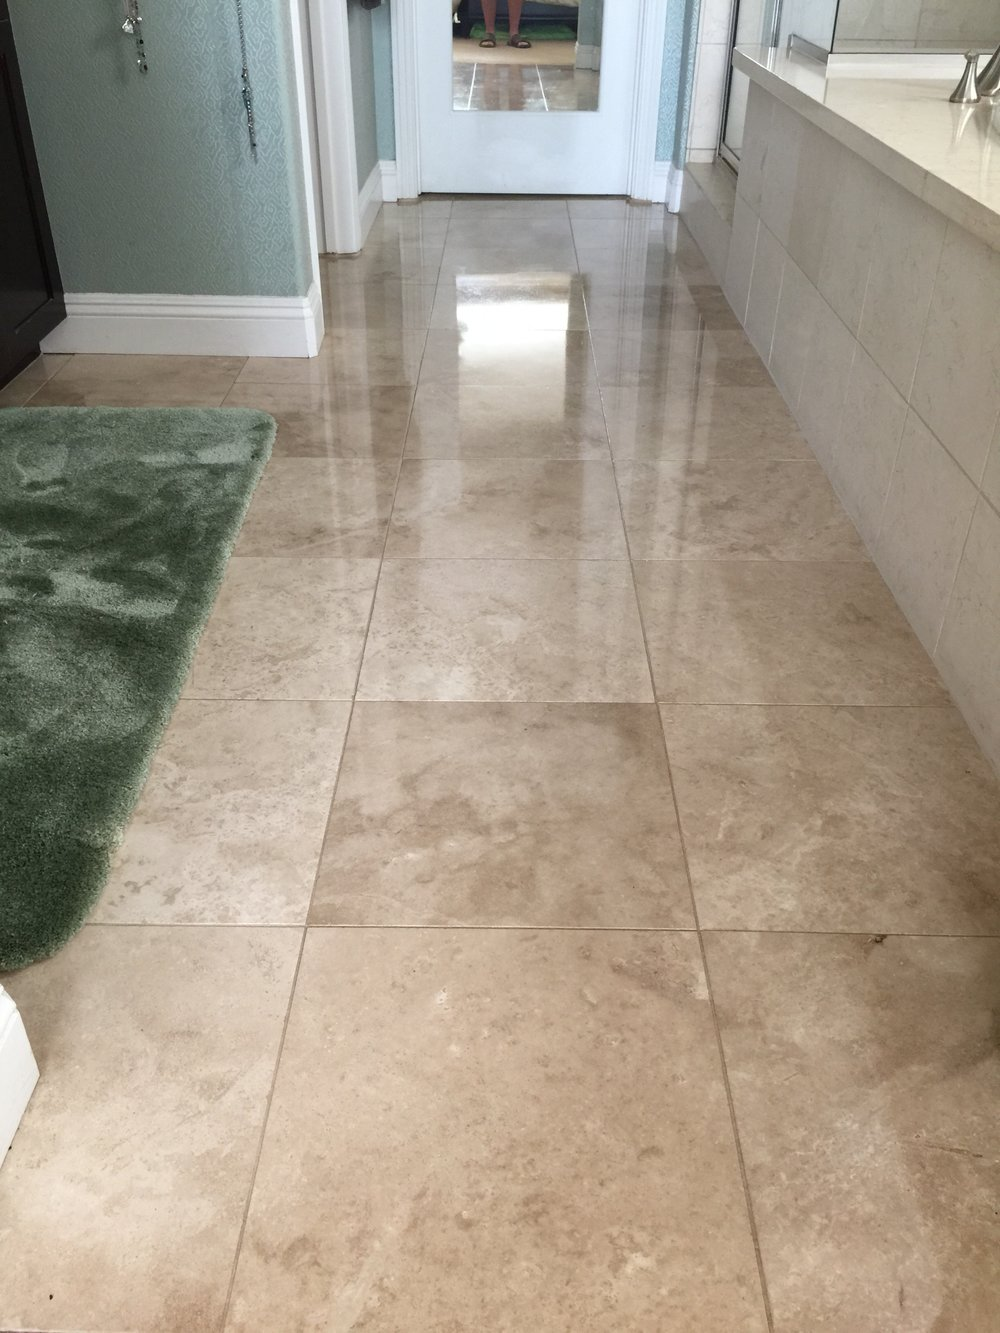 Travertine floor after coating is applied.